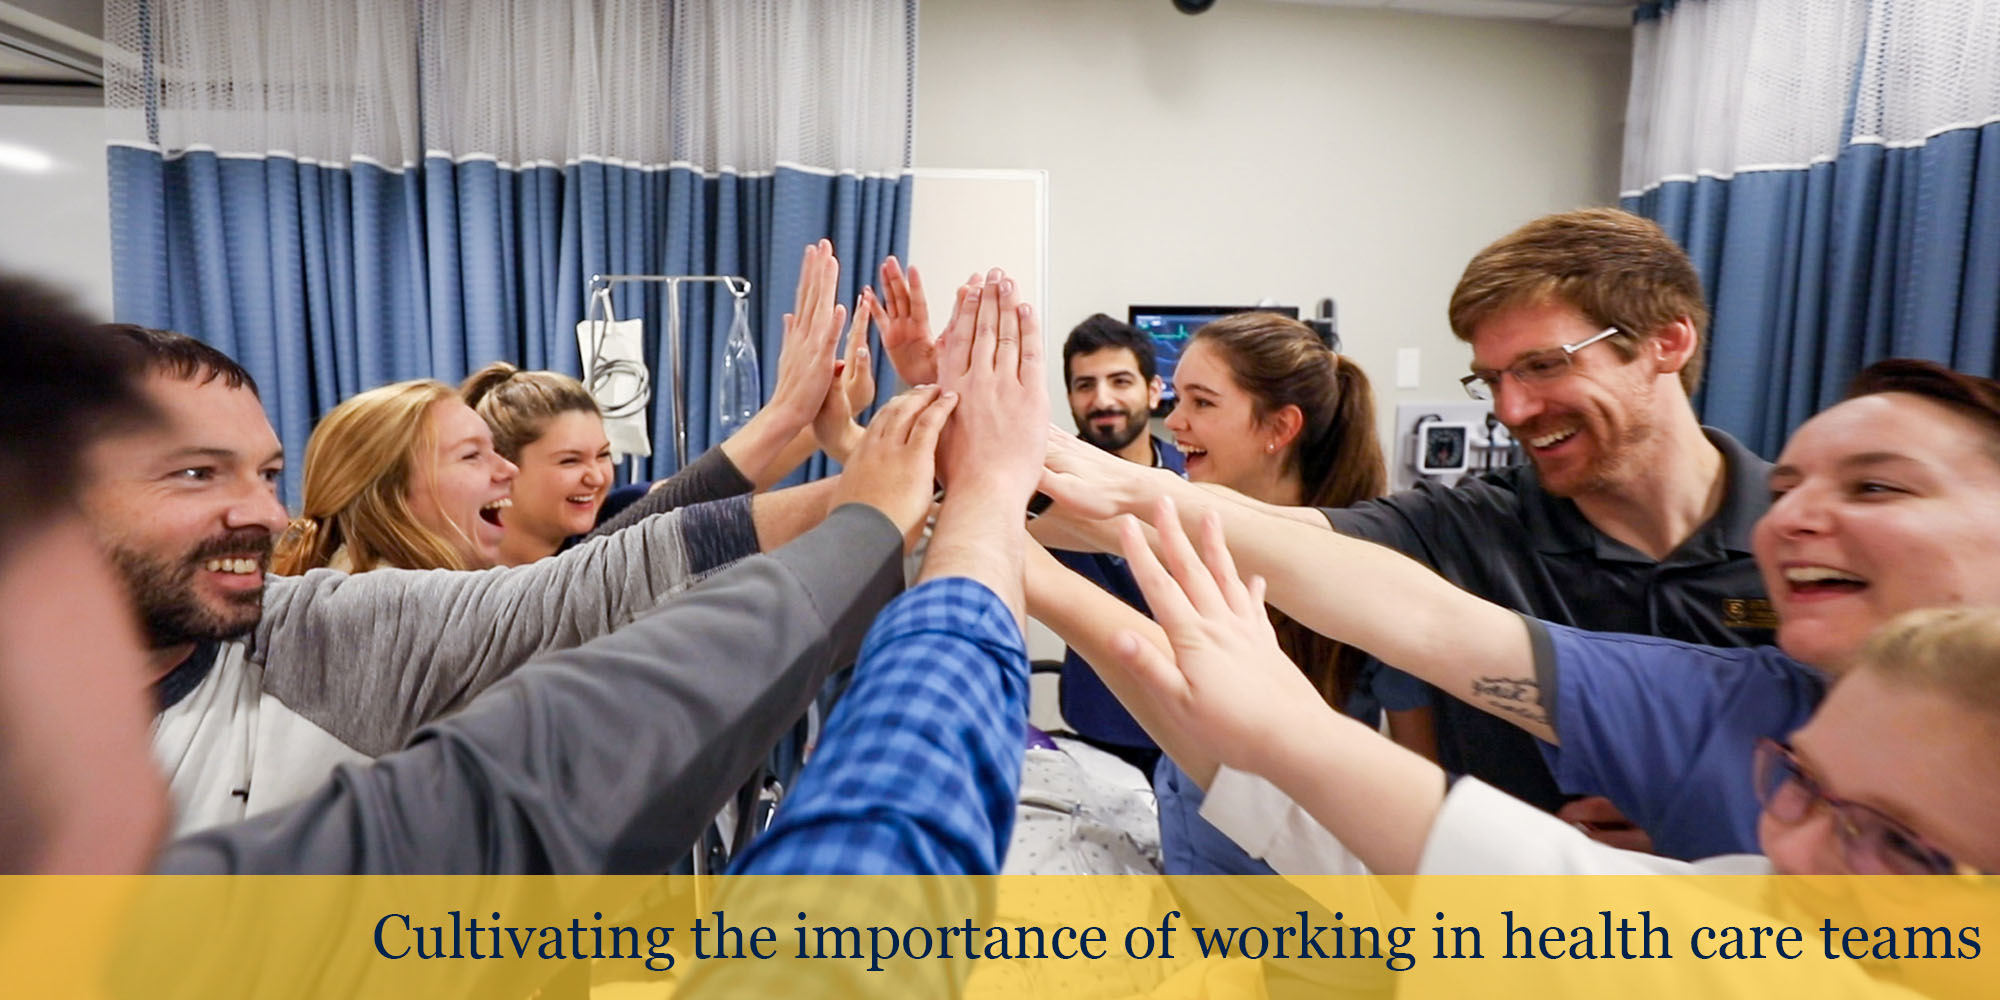 Cultivating the importance of working in health care teams